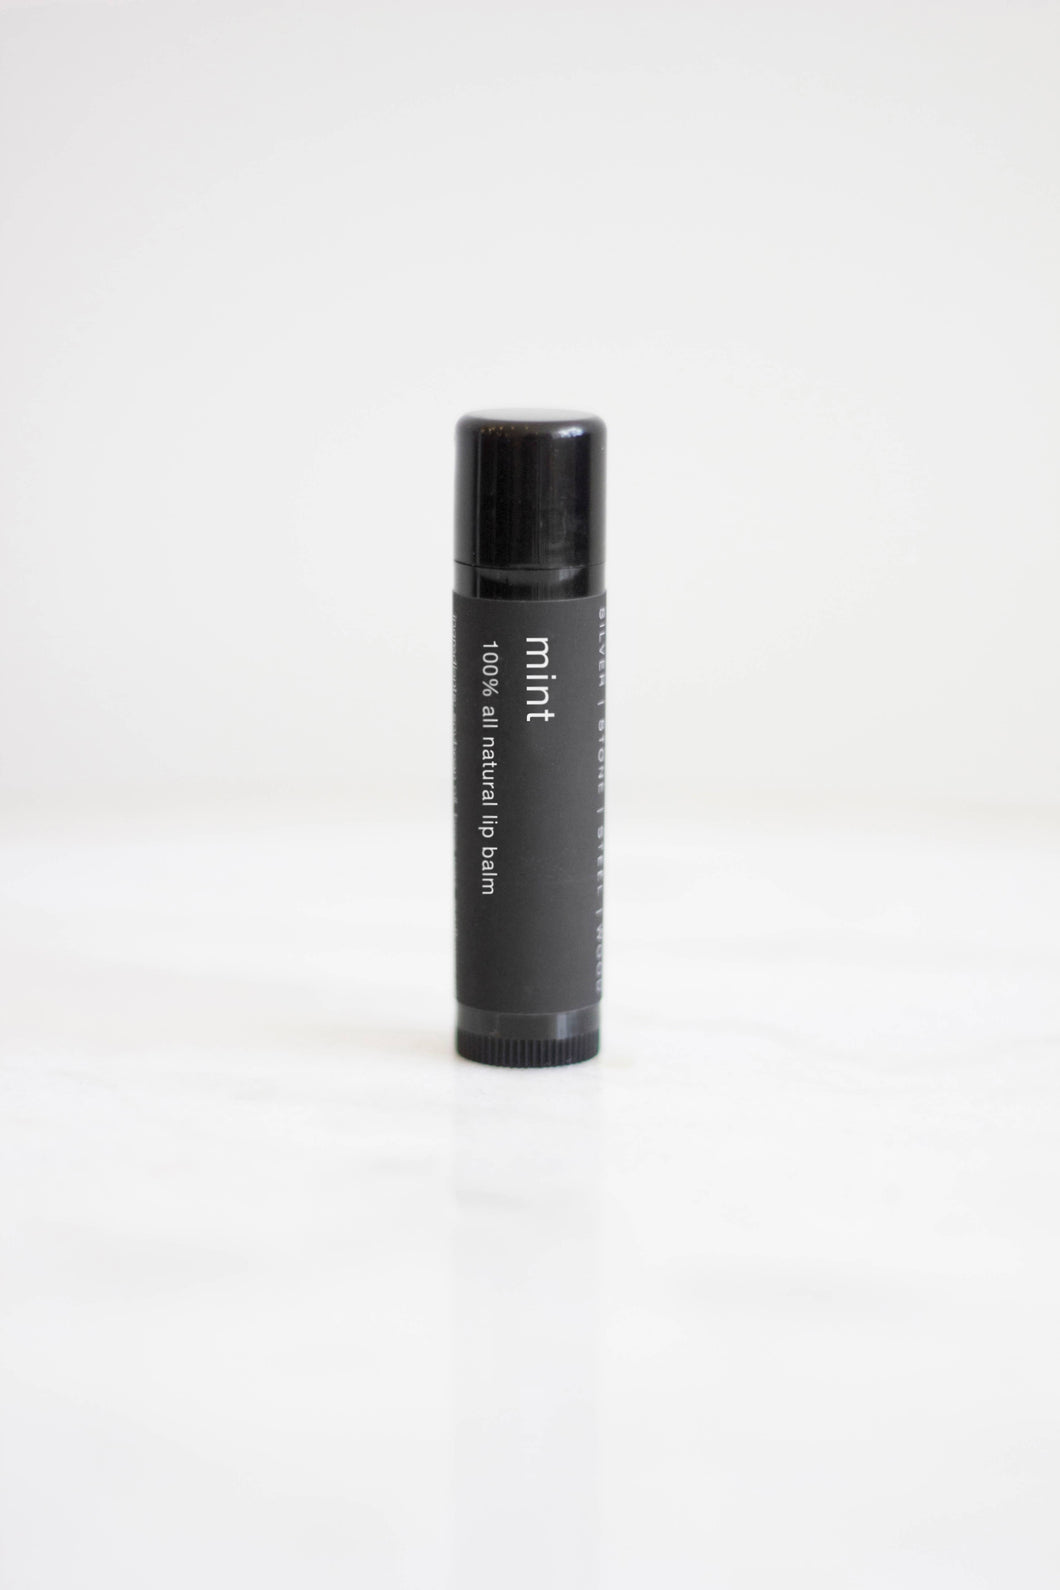 Sable Co Mint Lip Balm